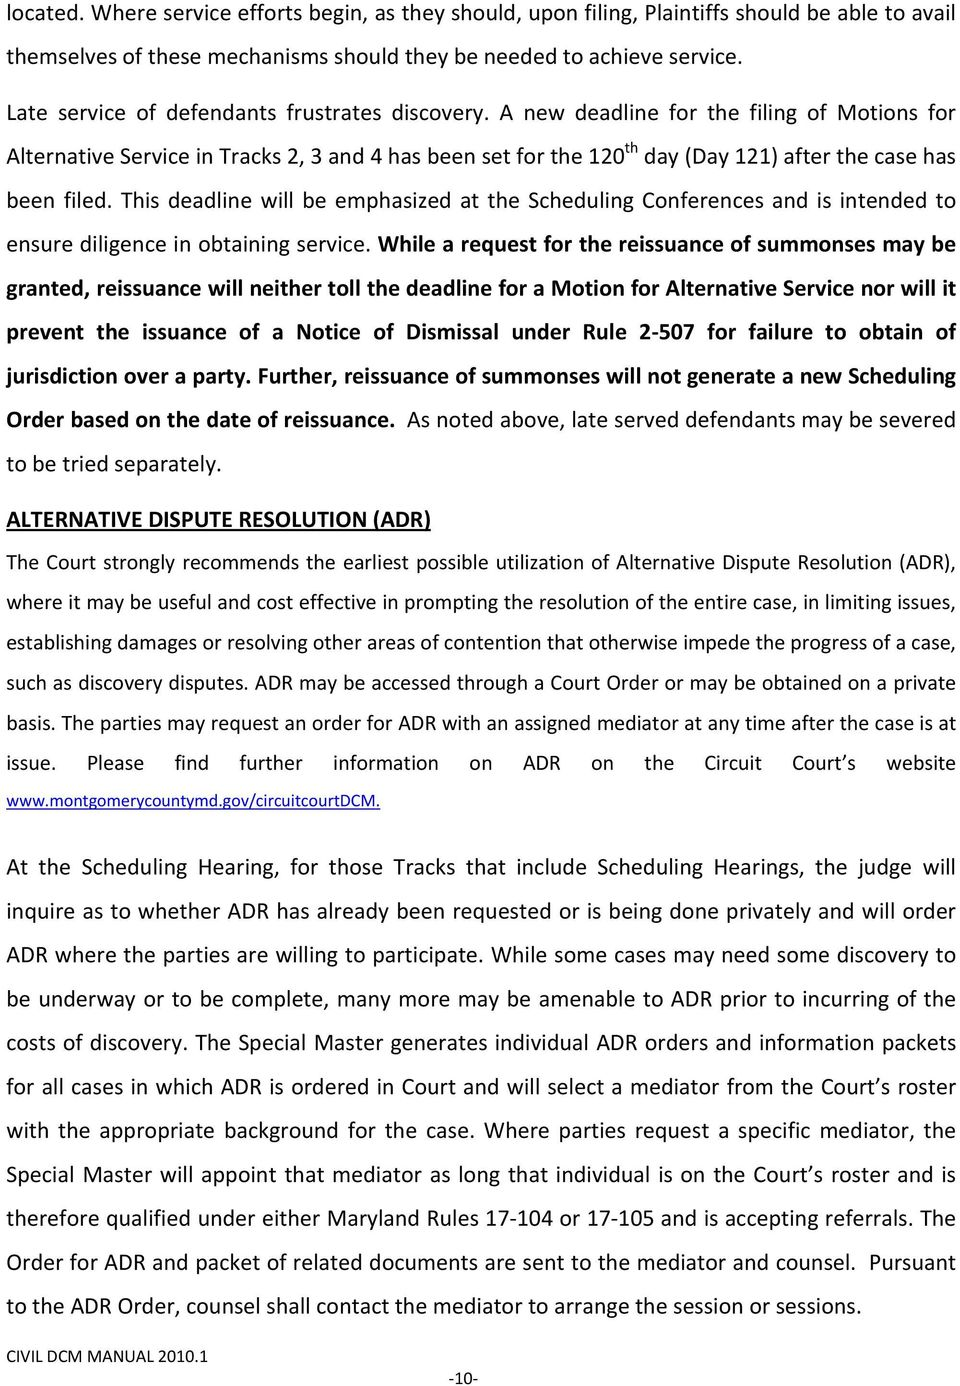 CIRCUIT COURT FOR MONTGOMERY COUNTY, MARYLAND CIVIL DIFFERENTIATED